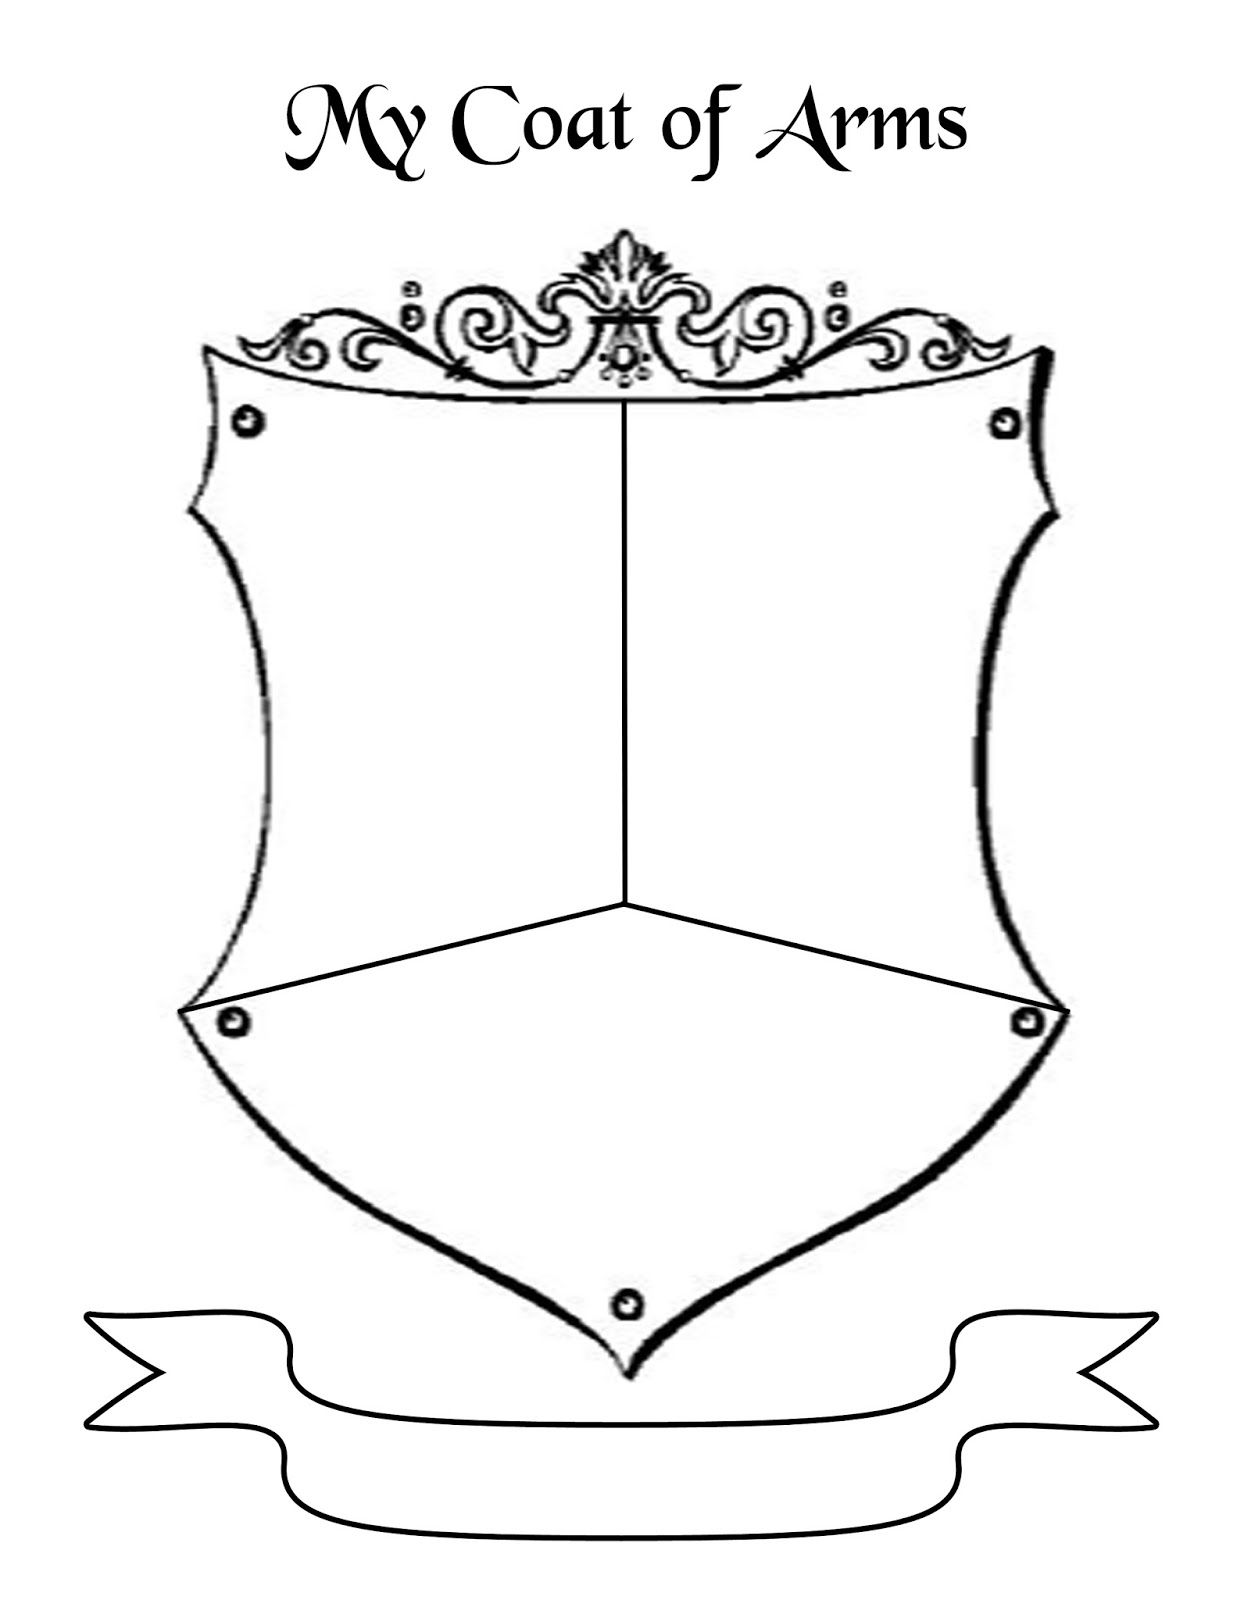 Troop Leader Mom Getting Started With Daisy Girl Scouts And Brownies Too Family Crest Template Coat Of Arms Shield Template